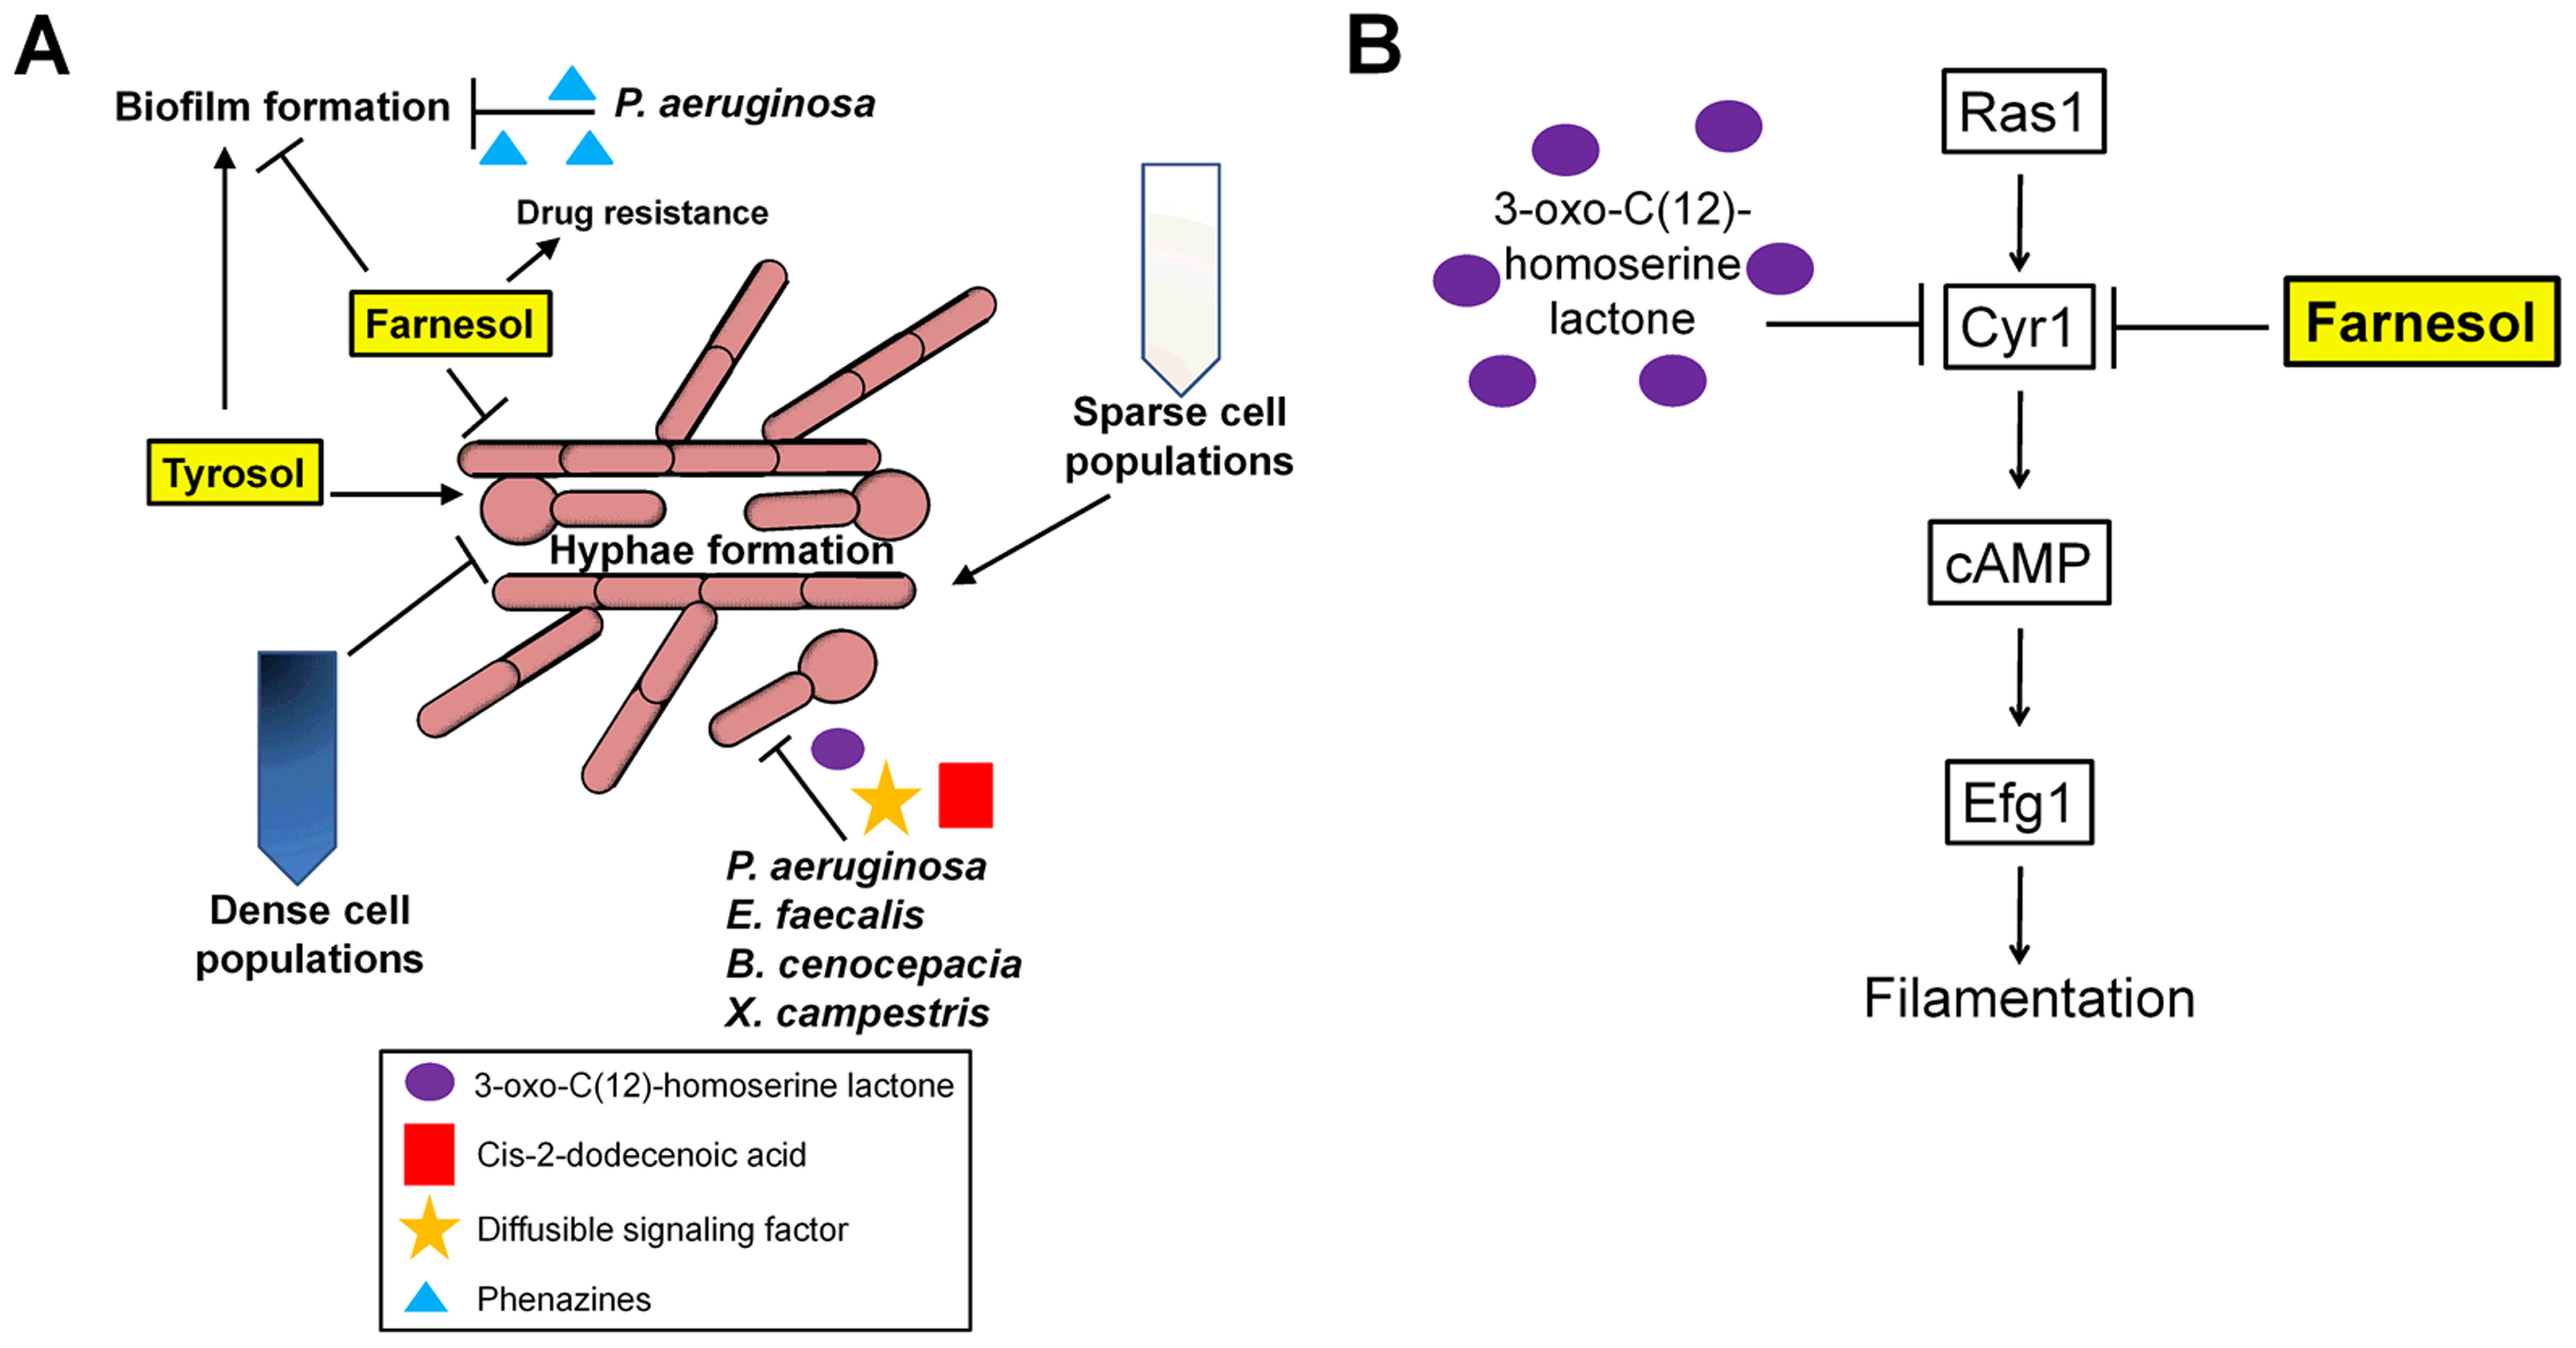 Environmental cues sensed by <i>C. albicans</i>.